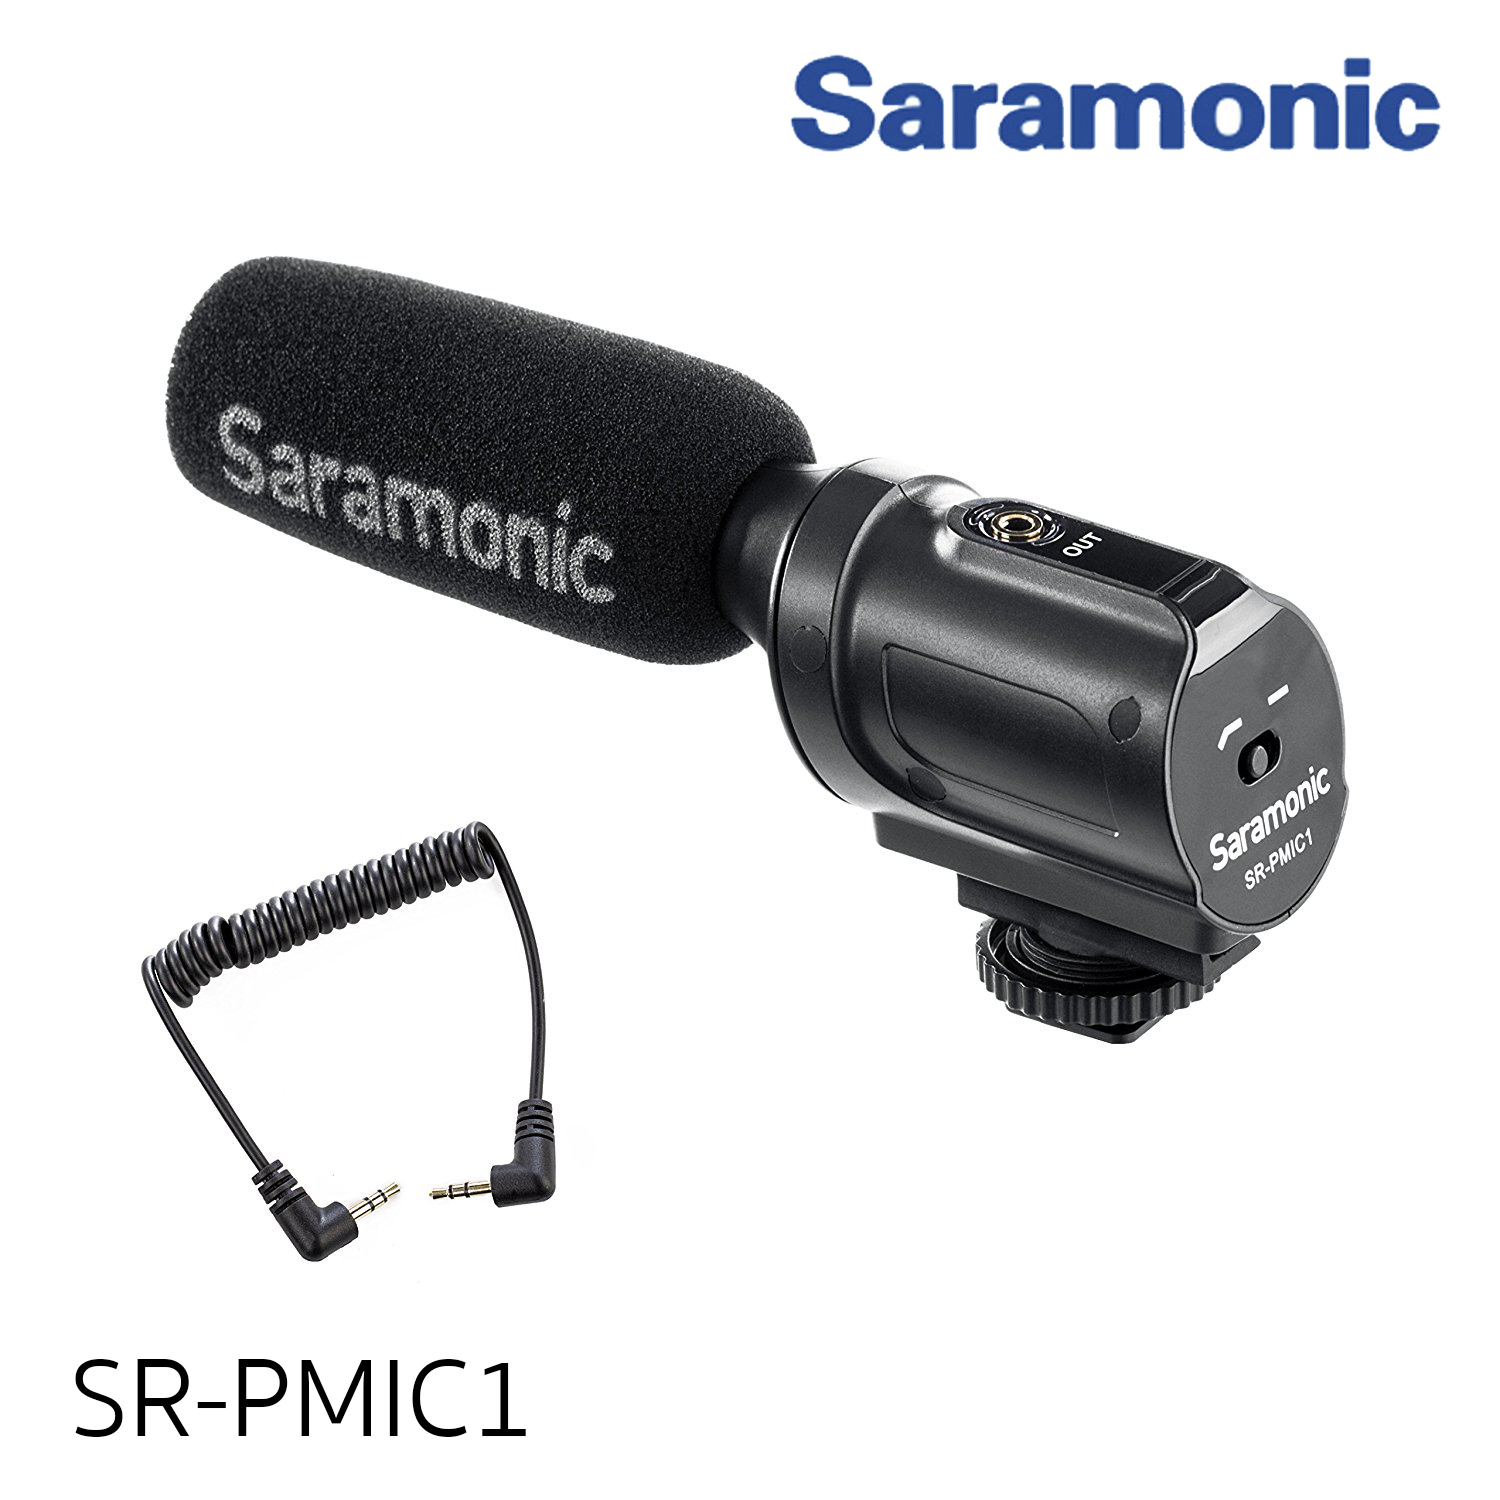 Saramonic SR-PMIC1 Super-Cardioid Unidirectional Condenser Microphone with Integrated Shockmount, Low-Cut Filter & Battery-Free Operation for DSLR Cameras & Camcorders